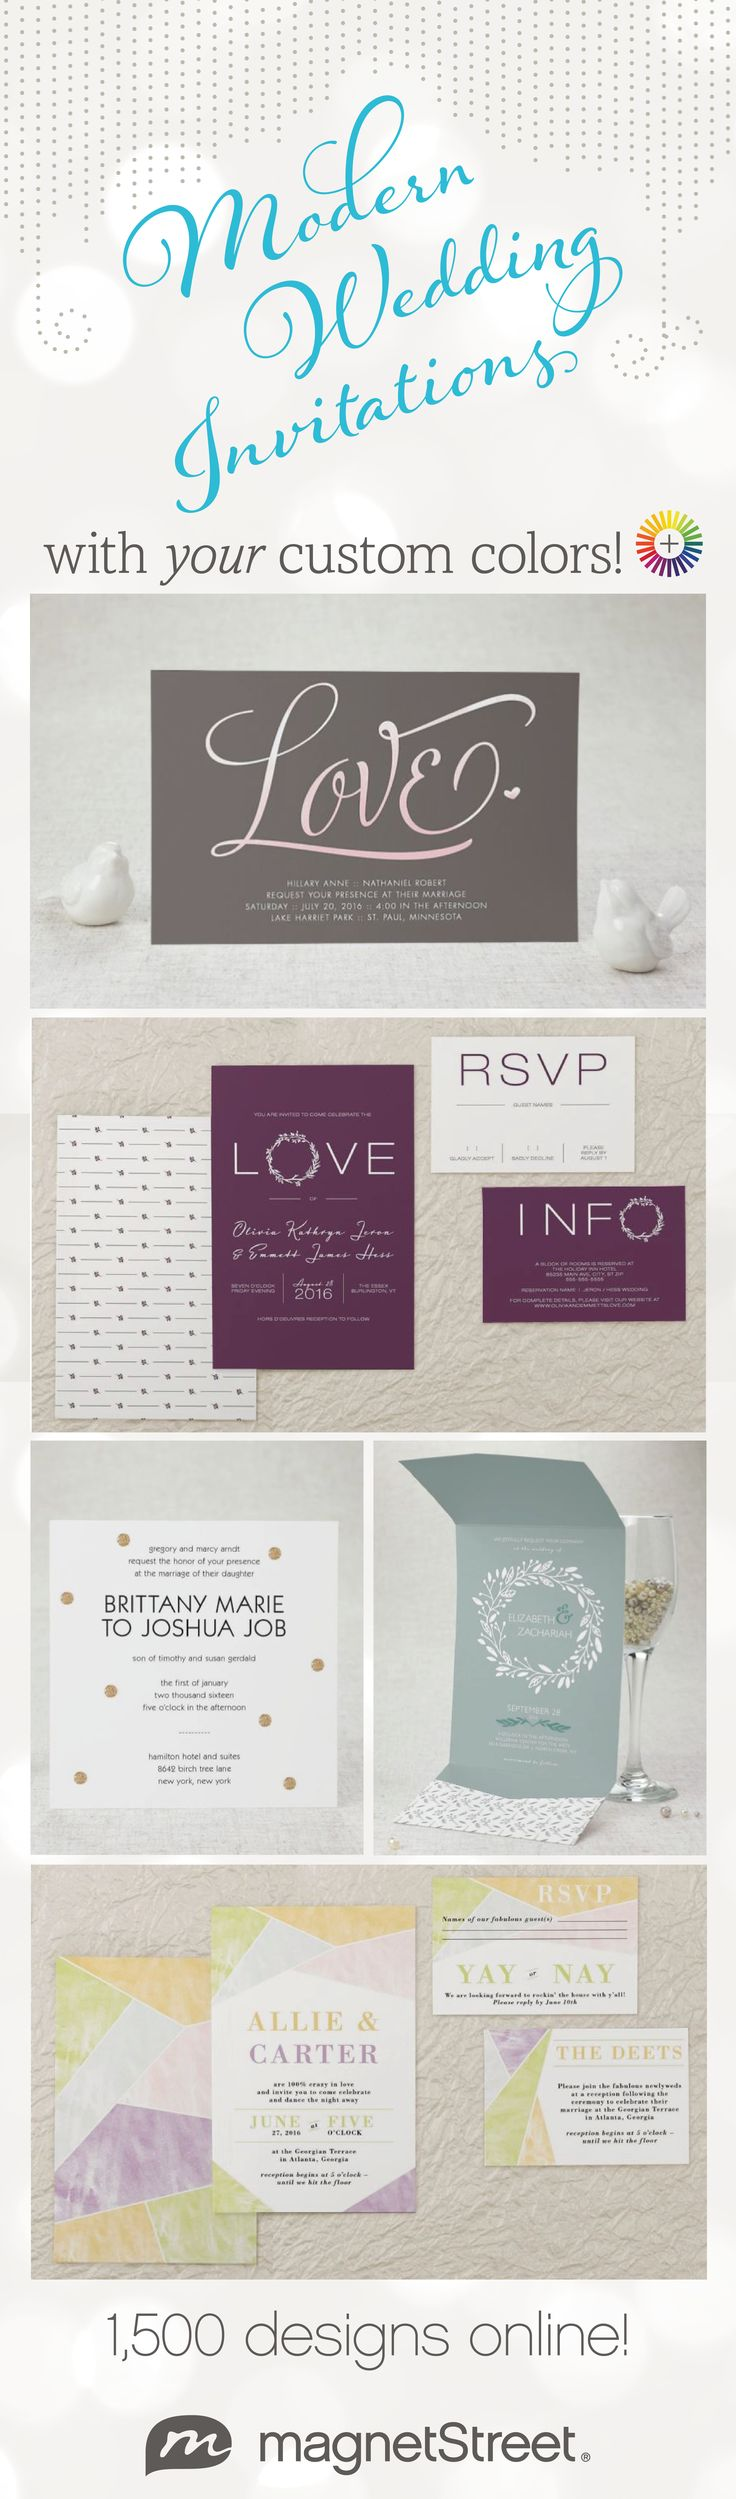 228 best wedding invitations images on pinterest weddings lots of new wedding invitations designs to choose from plus you can customize style stopboris Choice Image